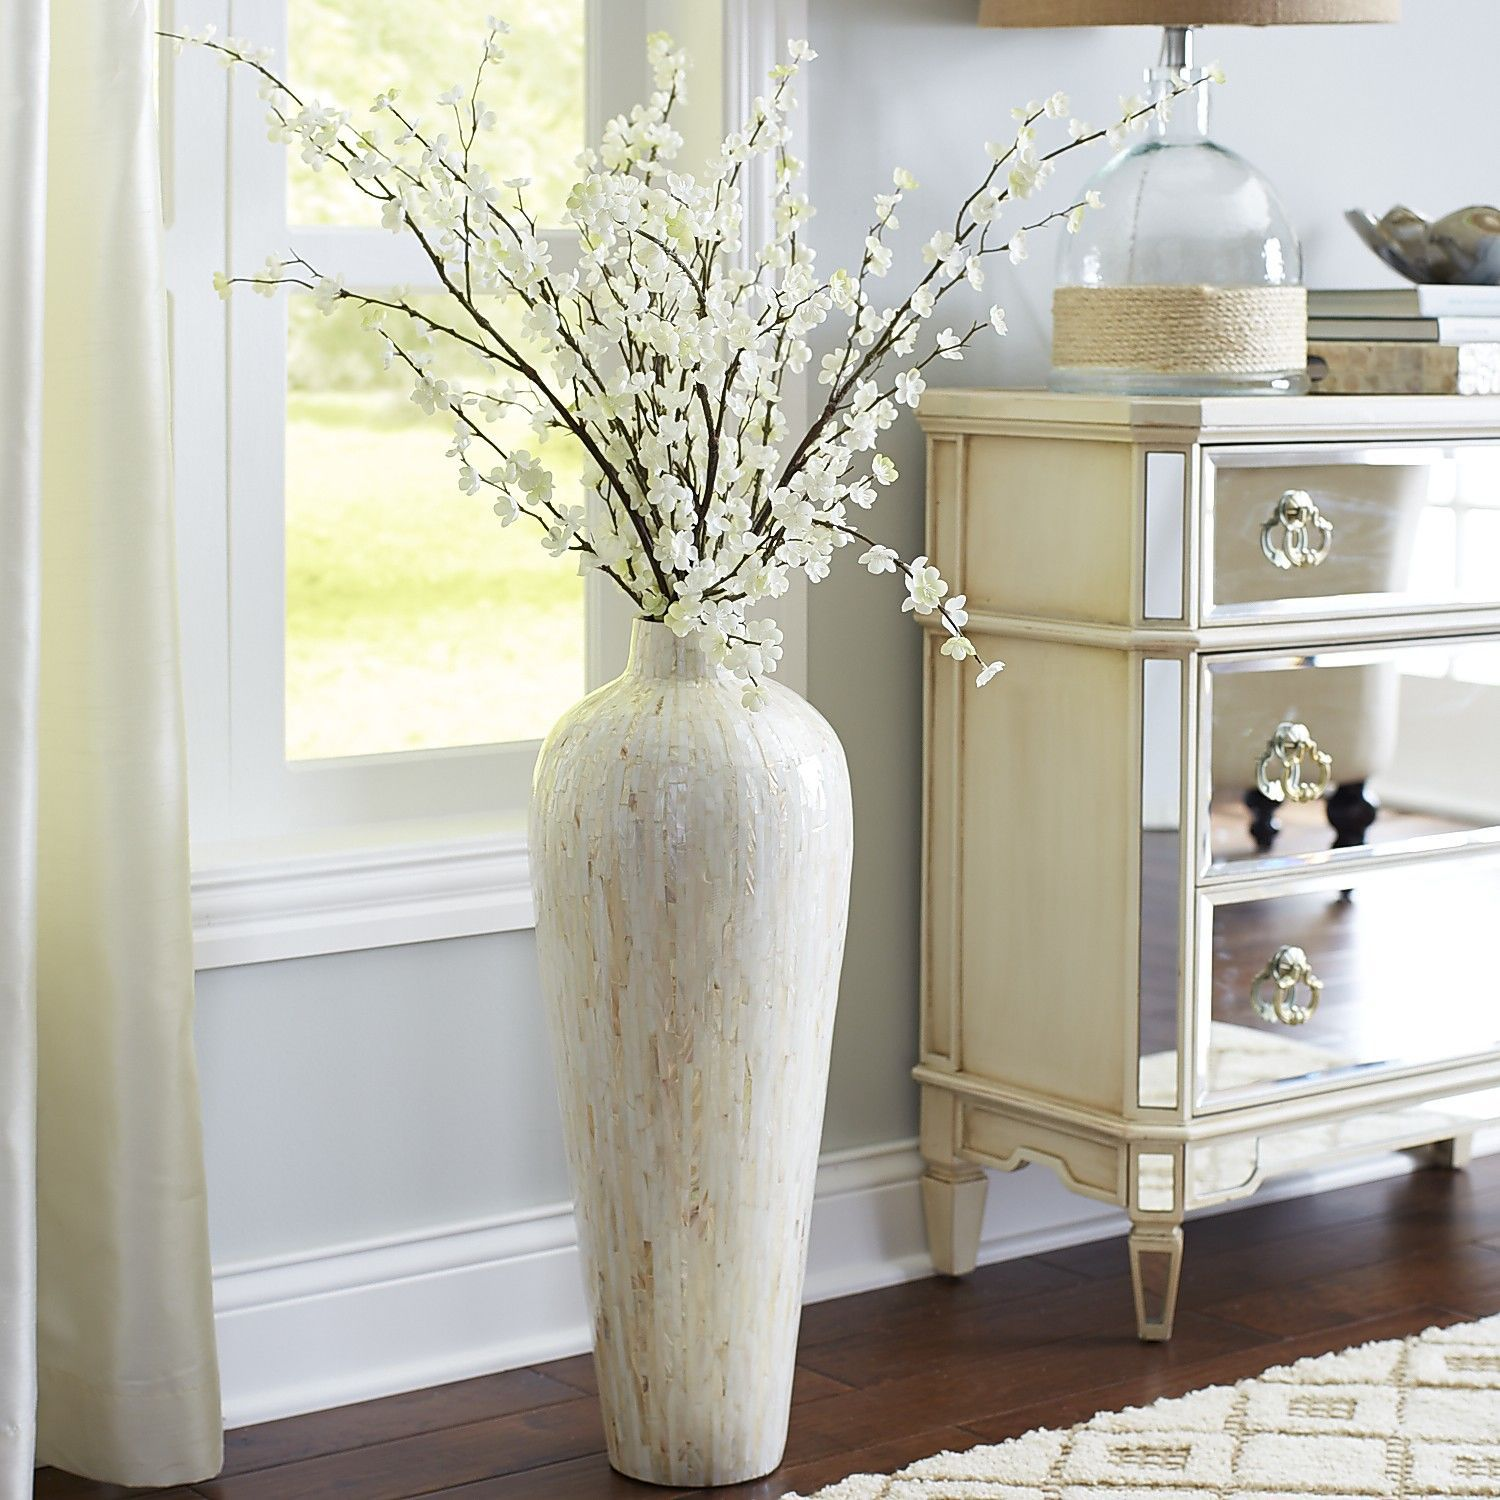 Tall Vases Home Decor Ivory Mother Of Pearl Floor Vase Living Room Inspiration